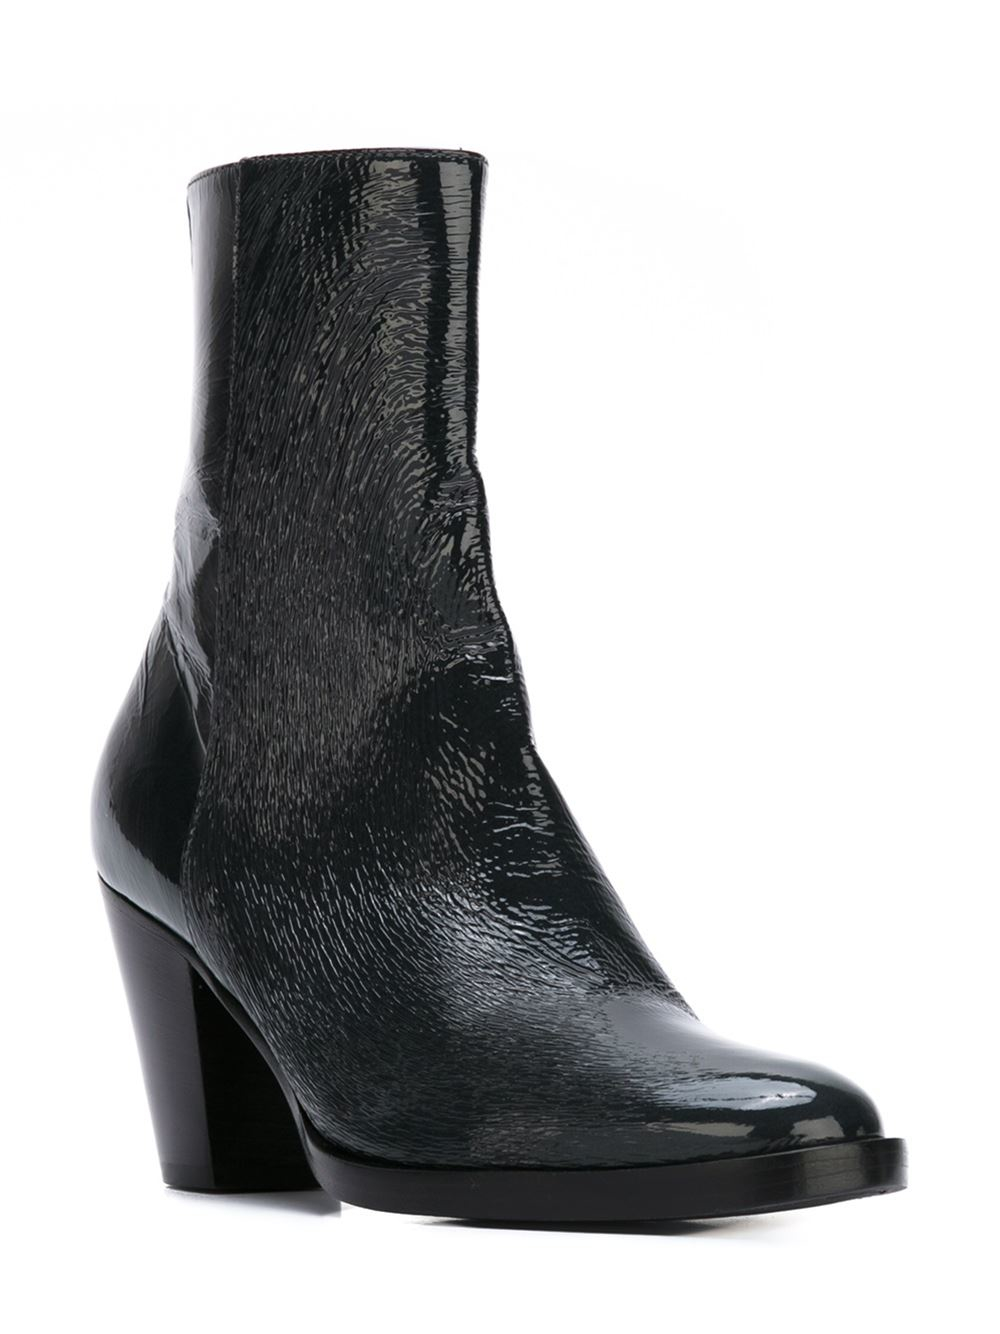 A.F.Vandevorst Mid Chunky Heel Ankle Boots in Gray - Lyst 4cd12d99cdc